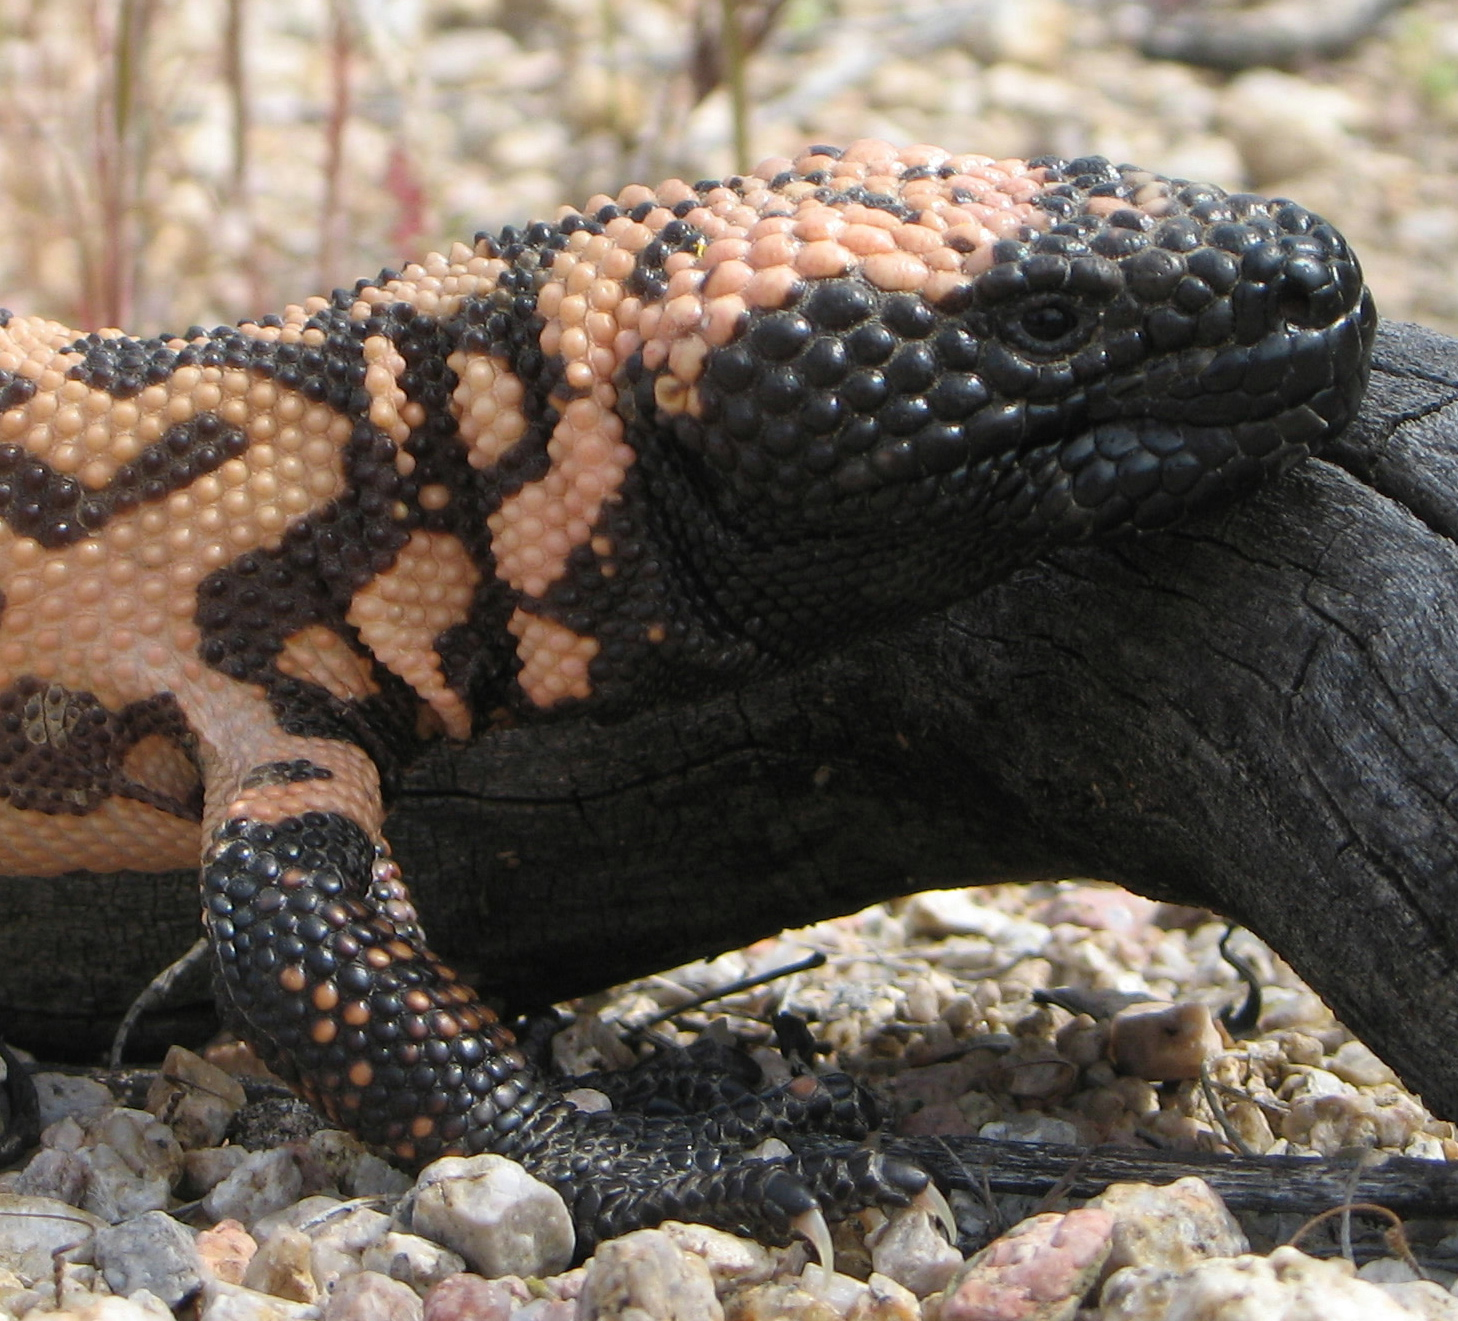 Visual appearance of the Gila monster (source)